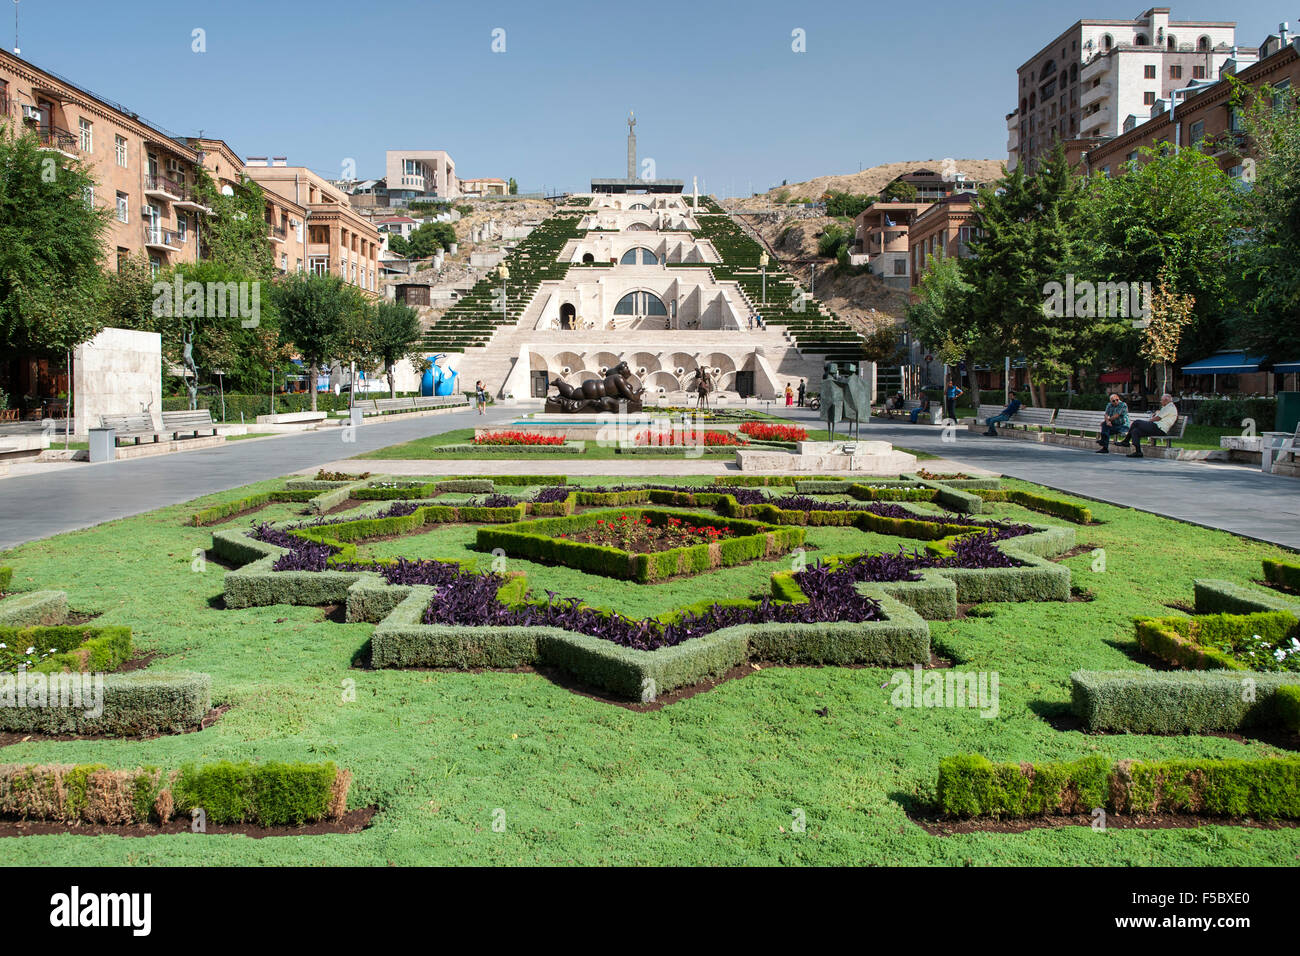 The Cascade monument and gardens in Yerevan, the capital of Armenia. - Stock Image